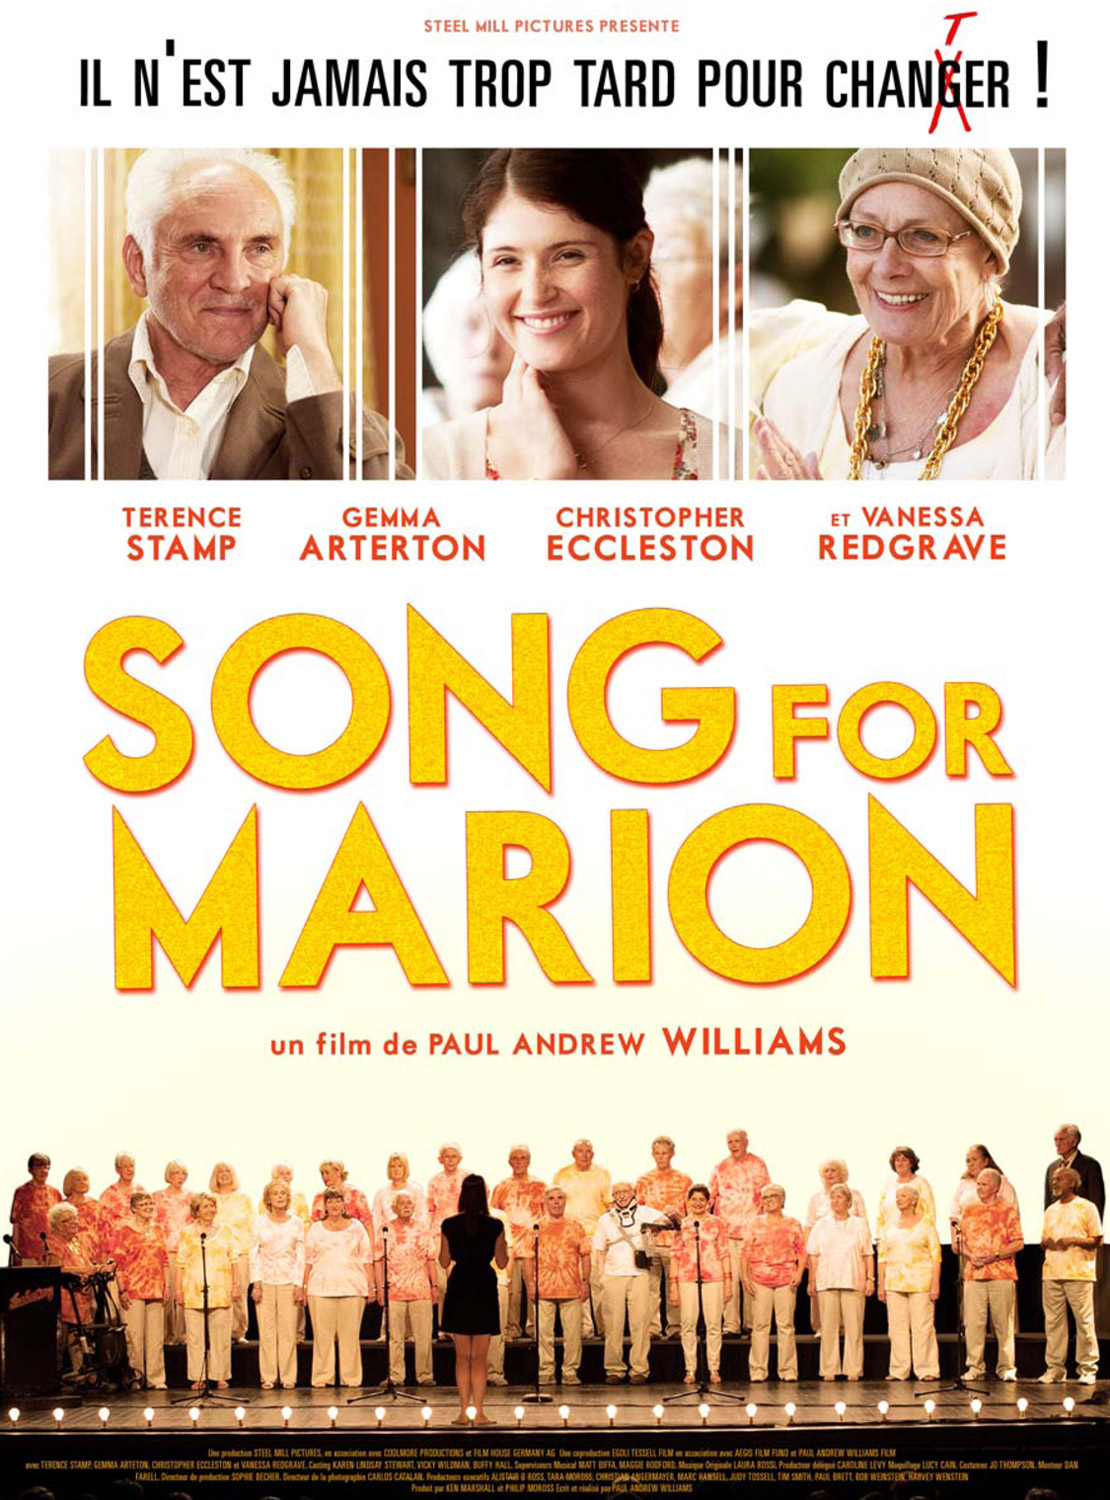 https://i0.wp.com/www.under-my-screen.com/wp-content/uploads/2013/11/affiche-Song-for-Marion-2012-1.jpg